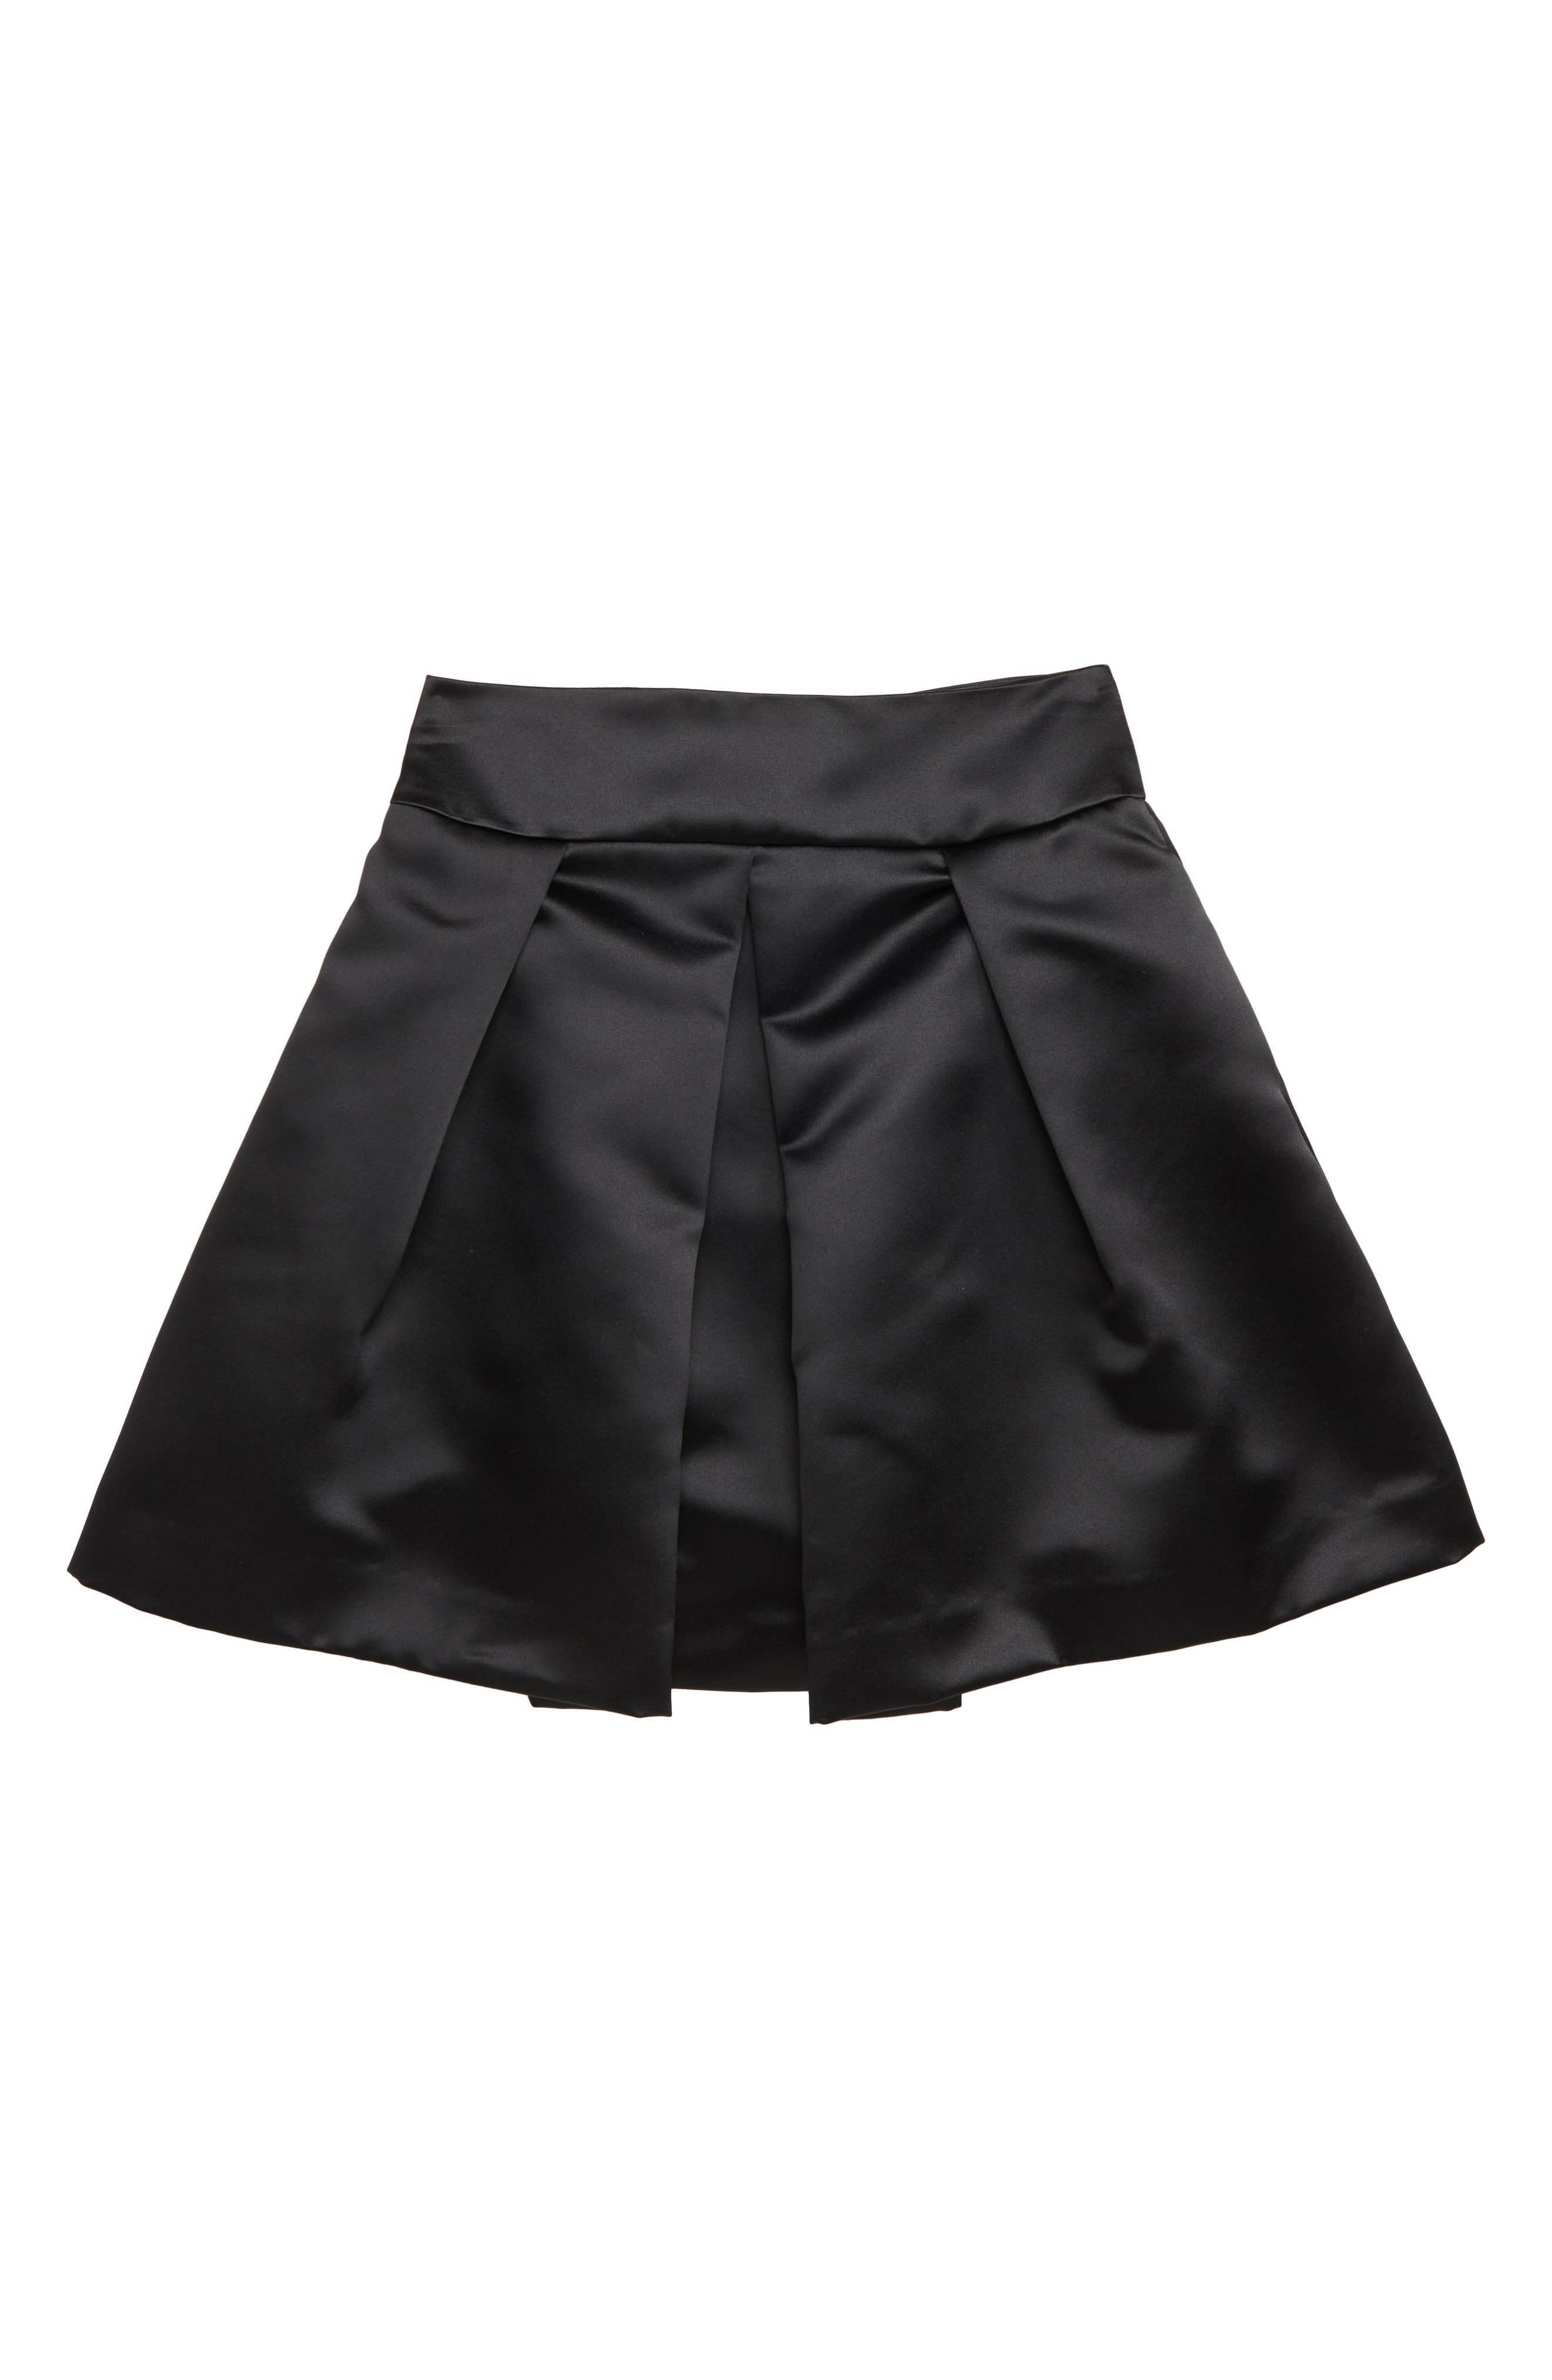 MILLY MINIS Pleated Skirt, Main, color, 001